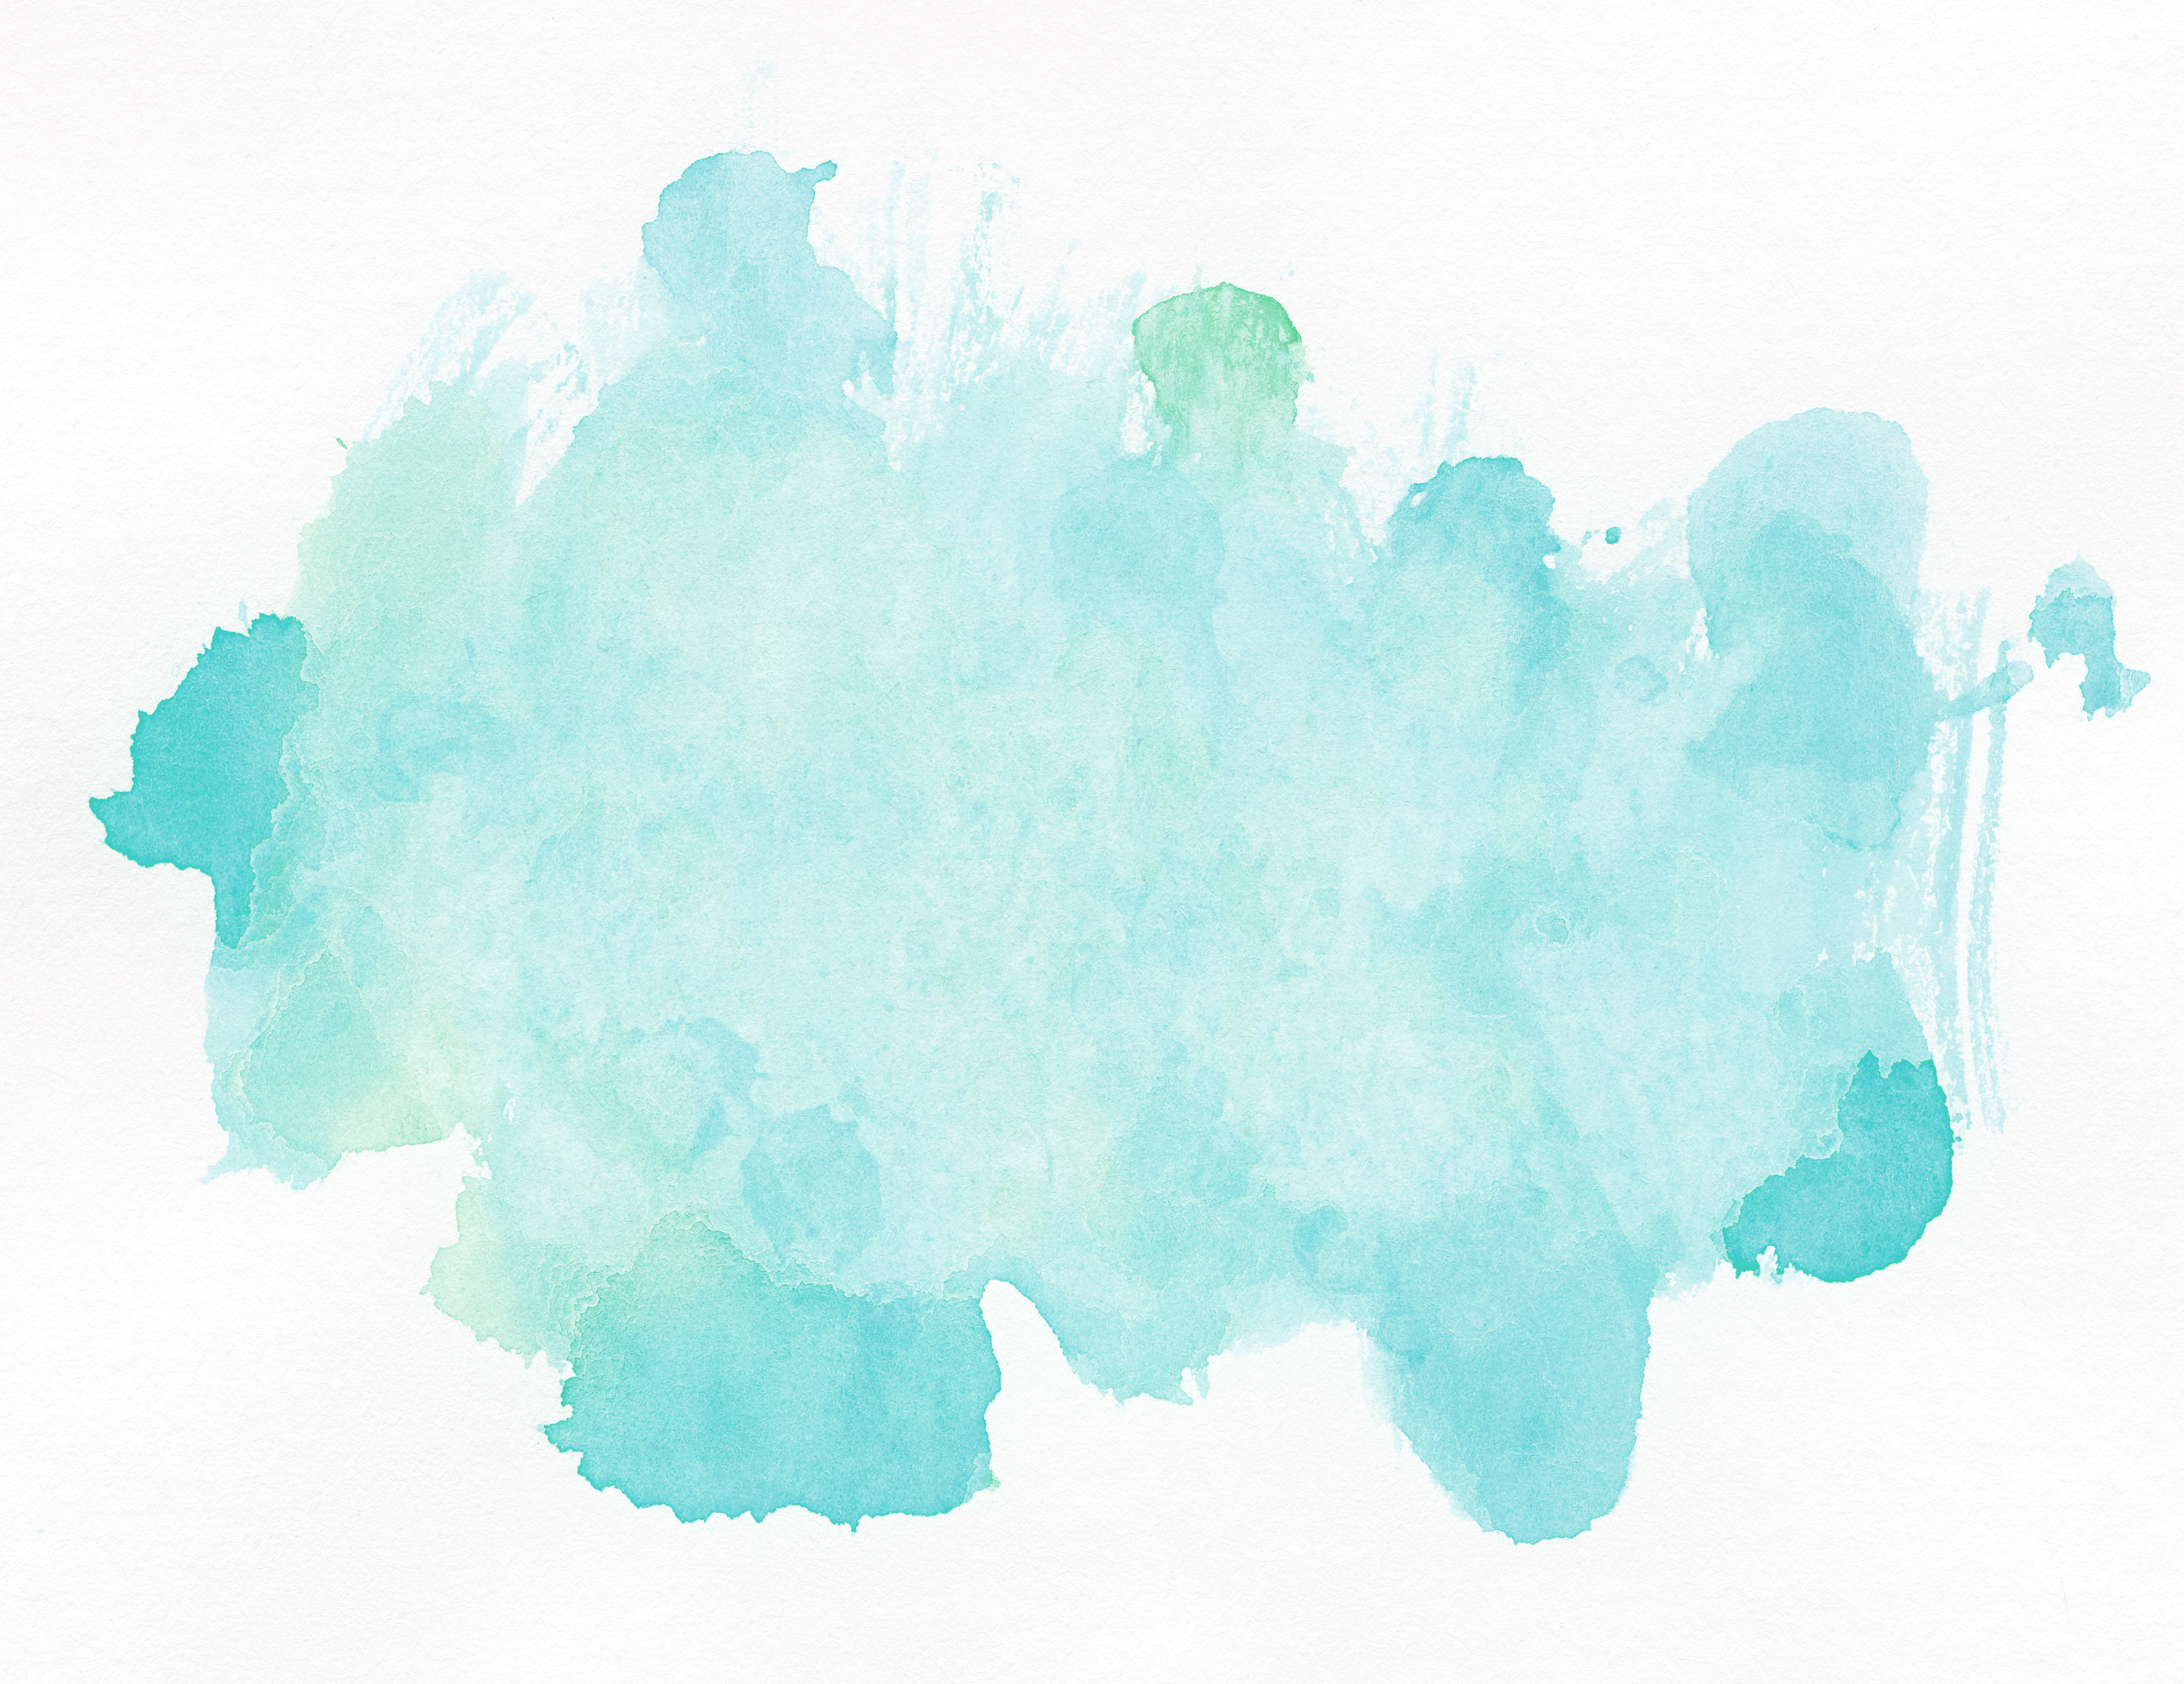 Watercolor Background   Discover Healing 673535   PNG Images   PNGio 5000x3856